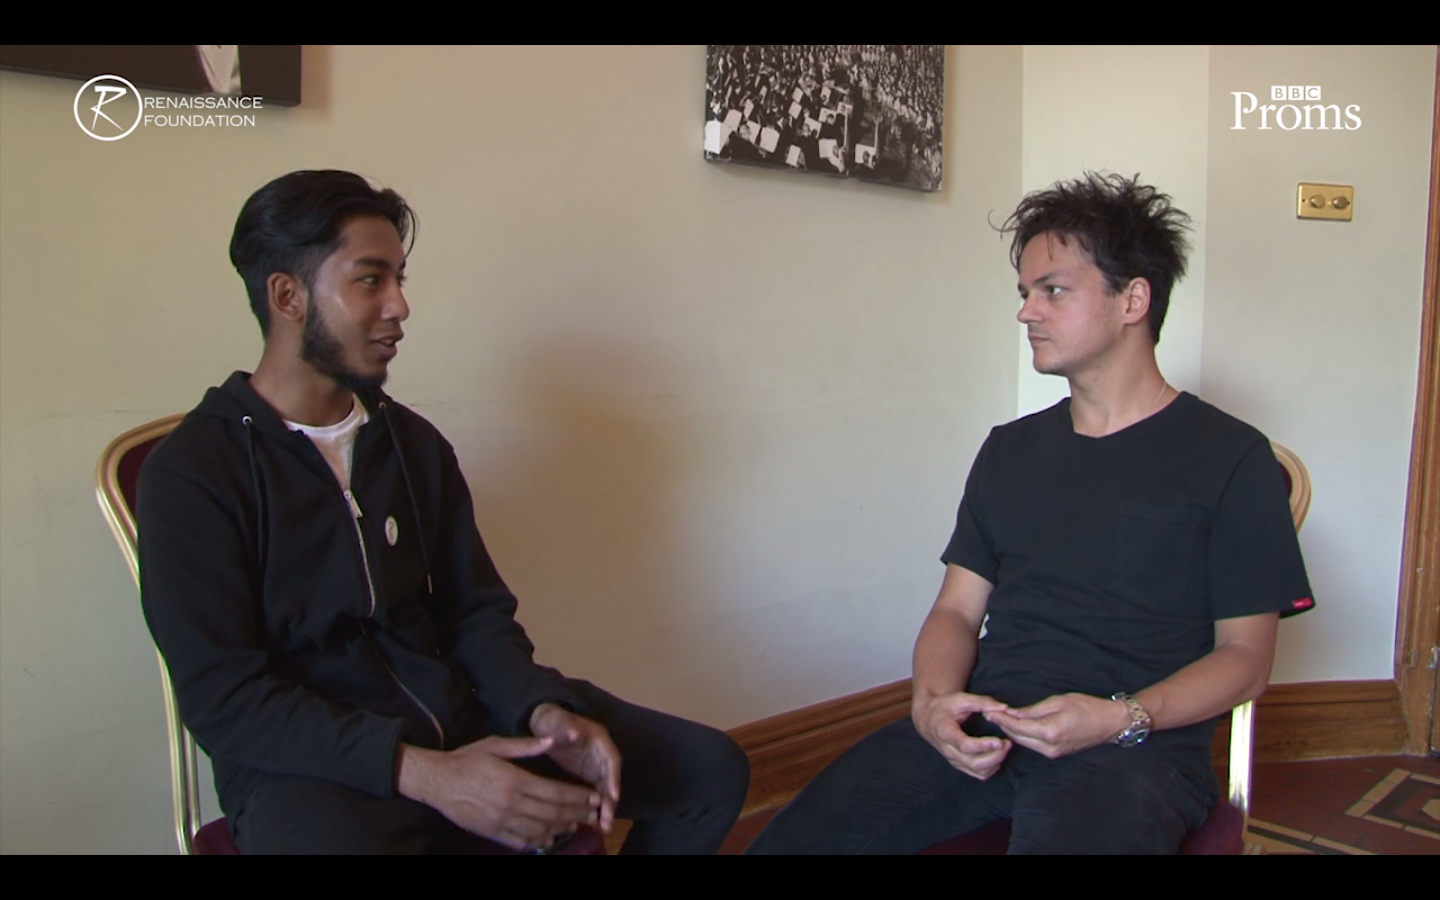 Jamie Cullum International Jazz Star sits down with Wahid ahead of his BBC Proms Performance at the Royal Albert Hall